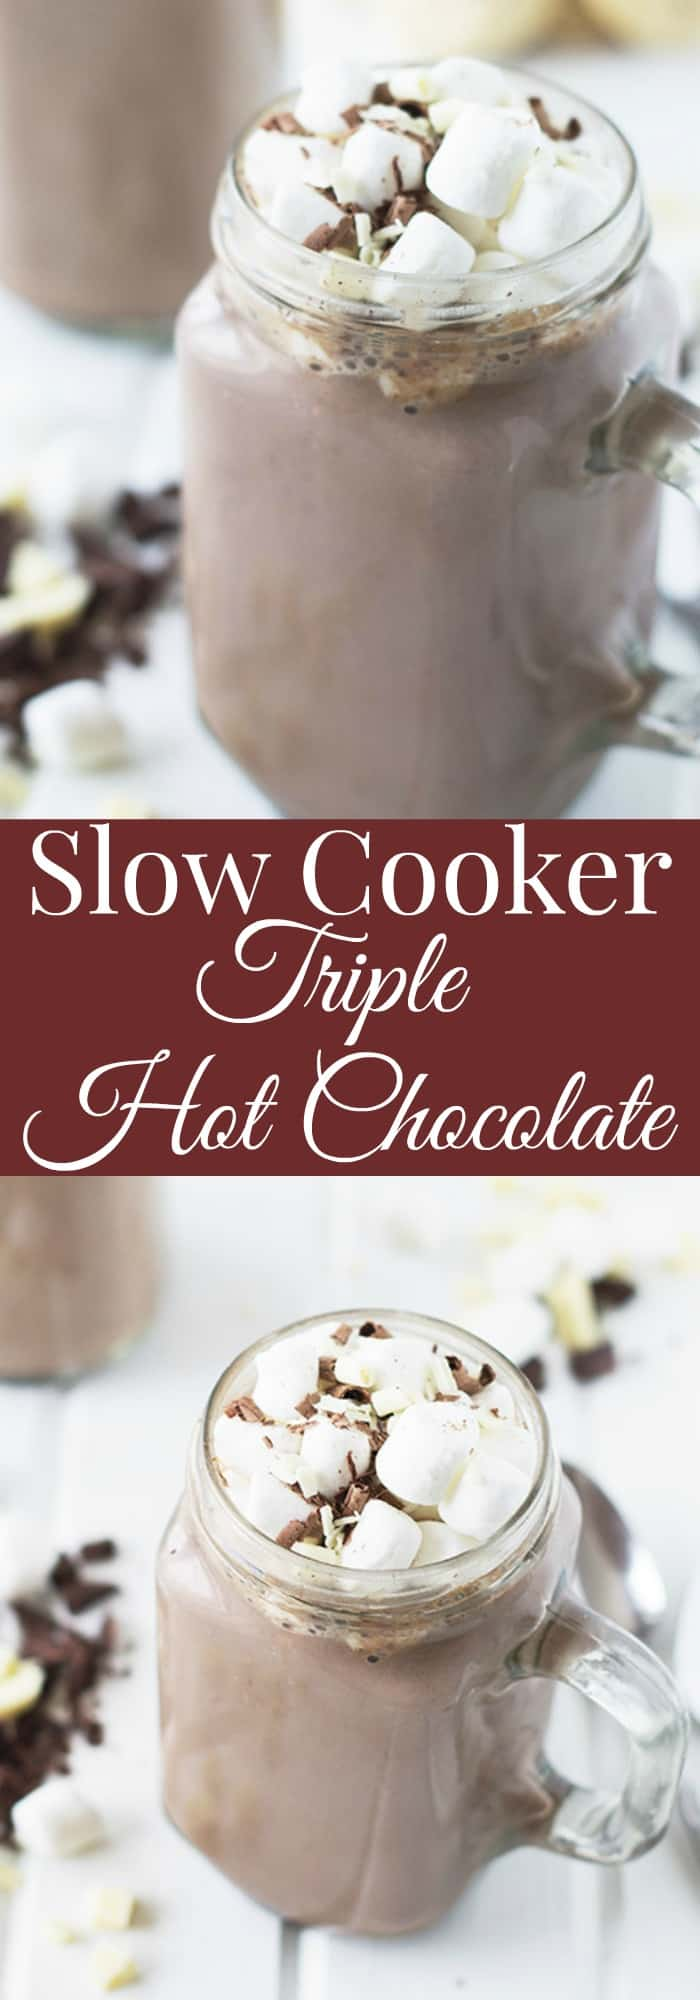 Slow Cooker Triple Hot Chocolate | Countryside Cravings